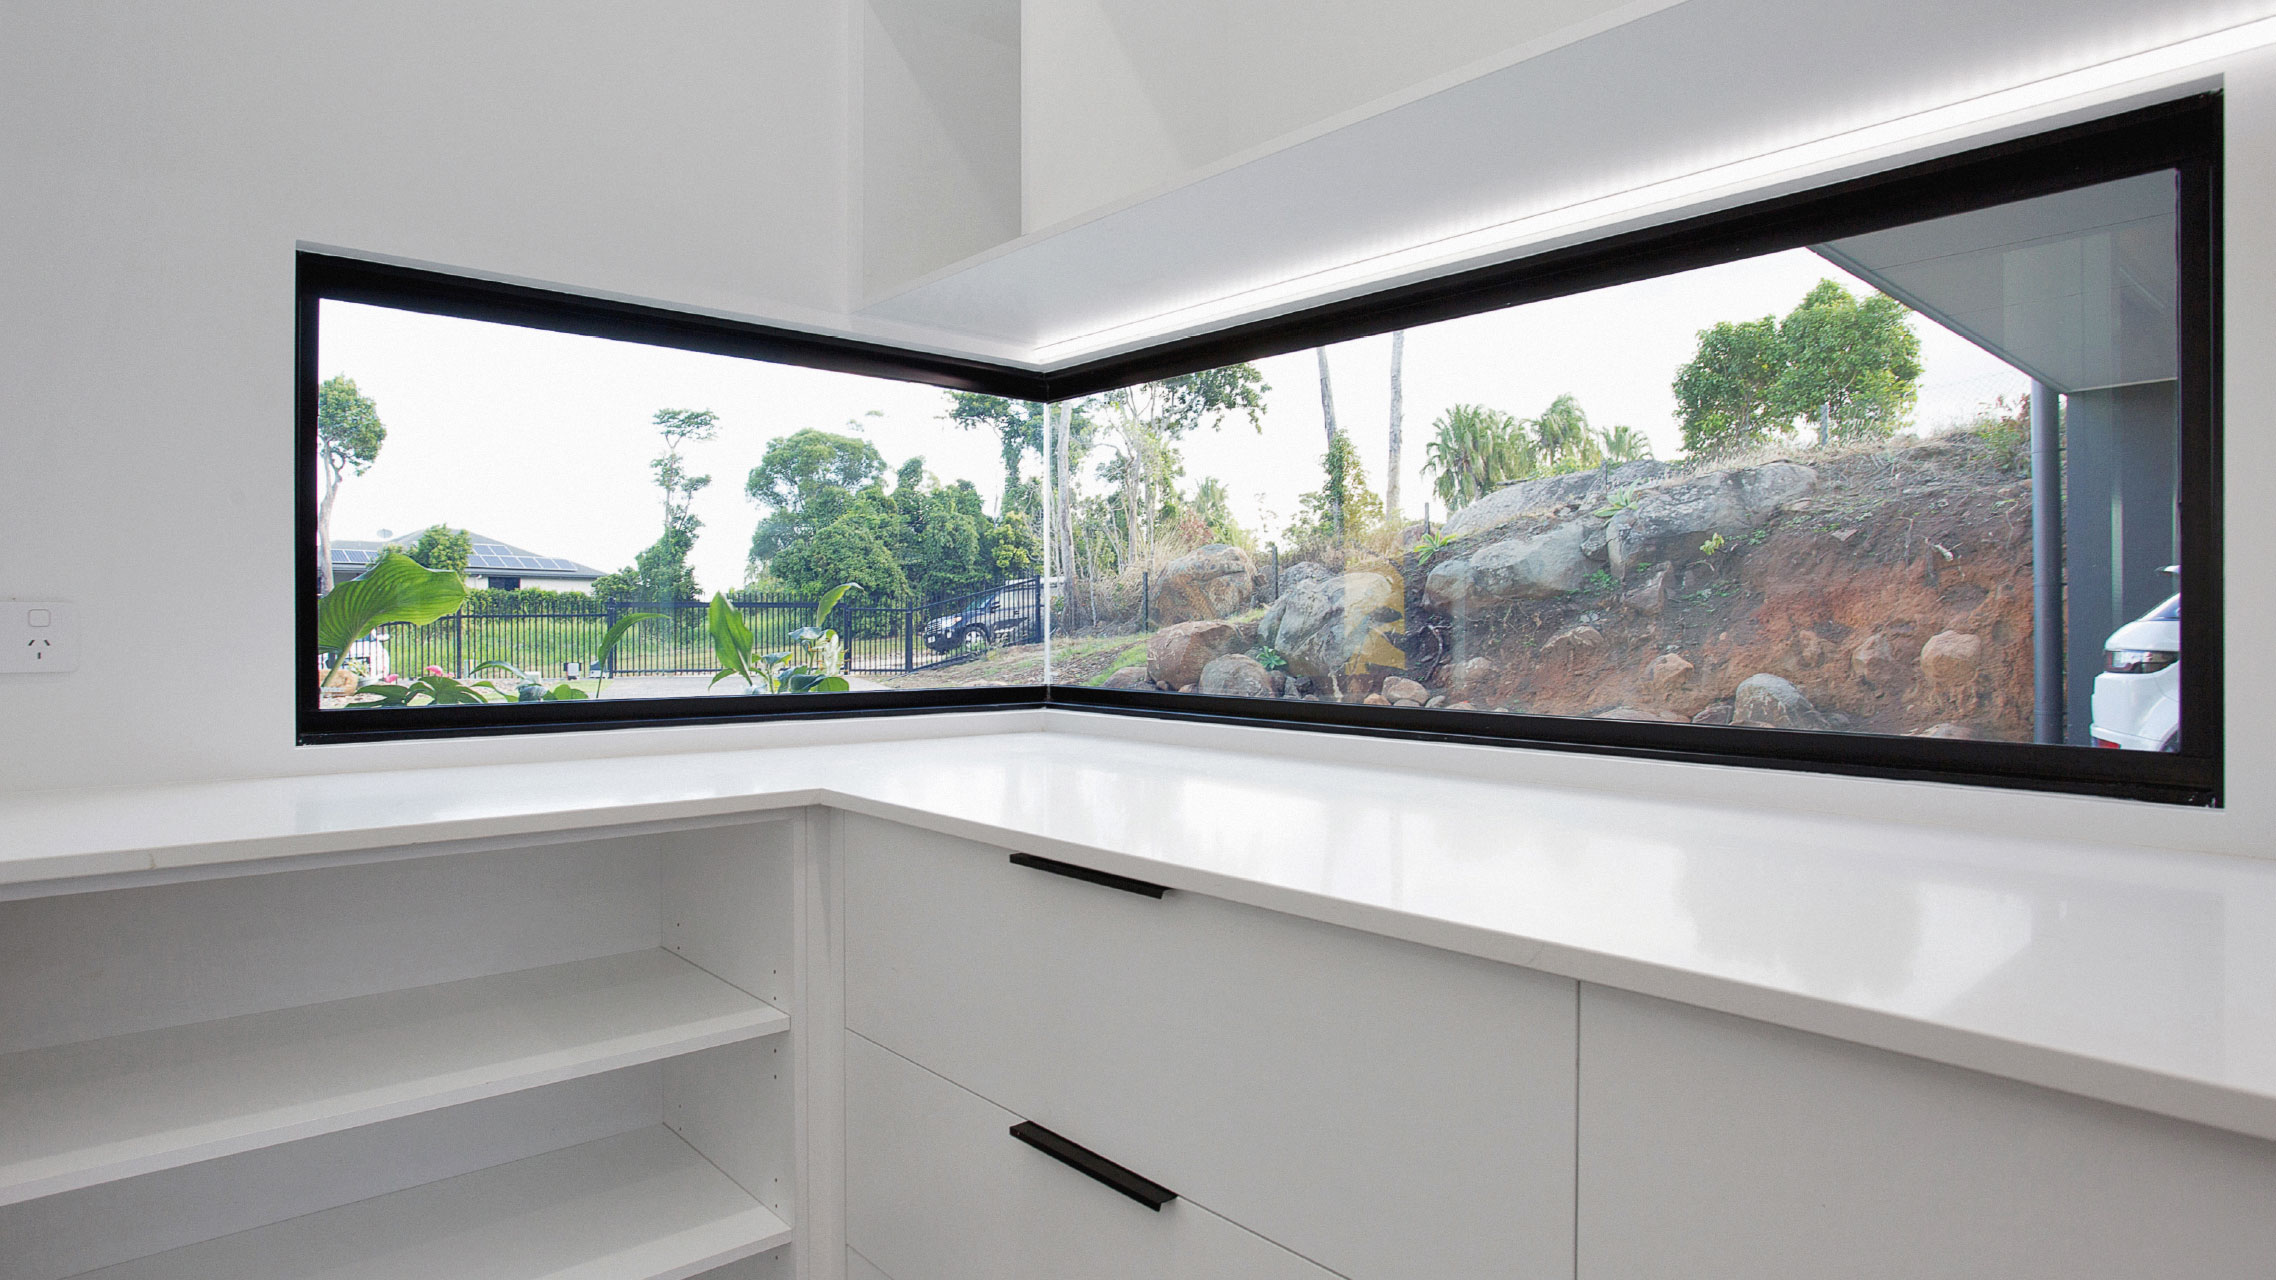 Large Butt Joint Fixed Window